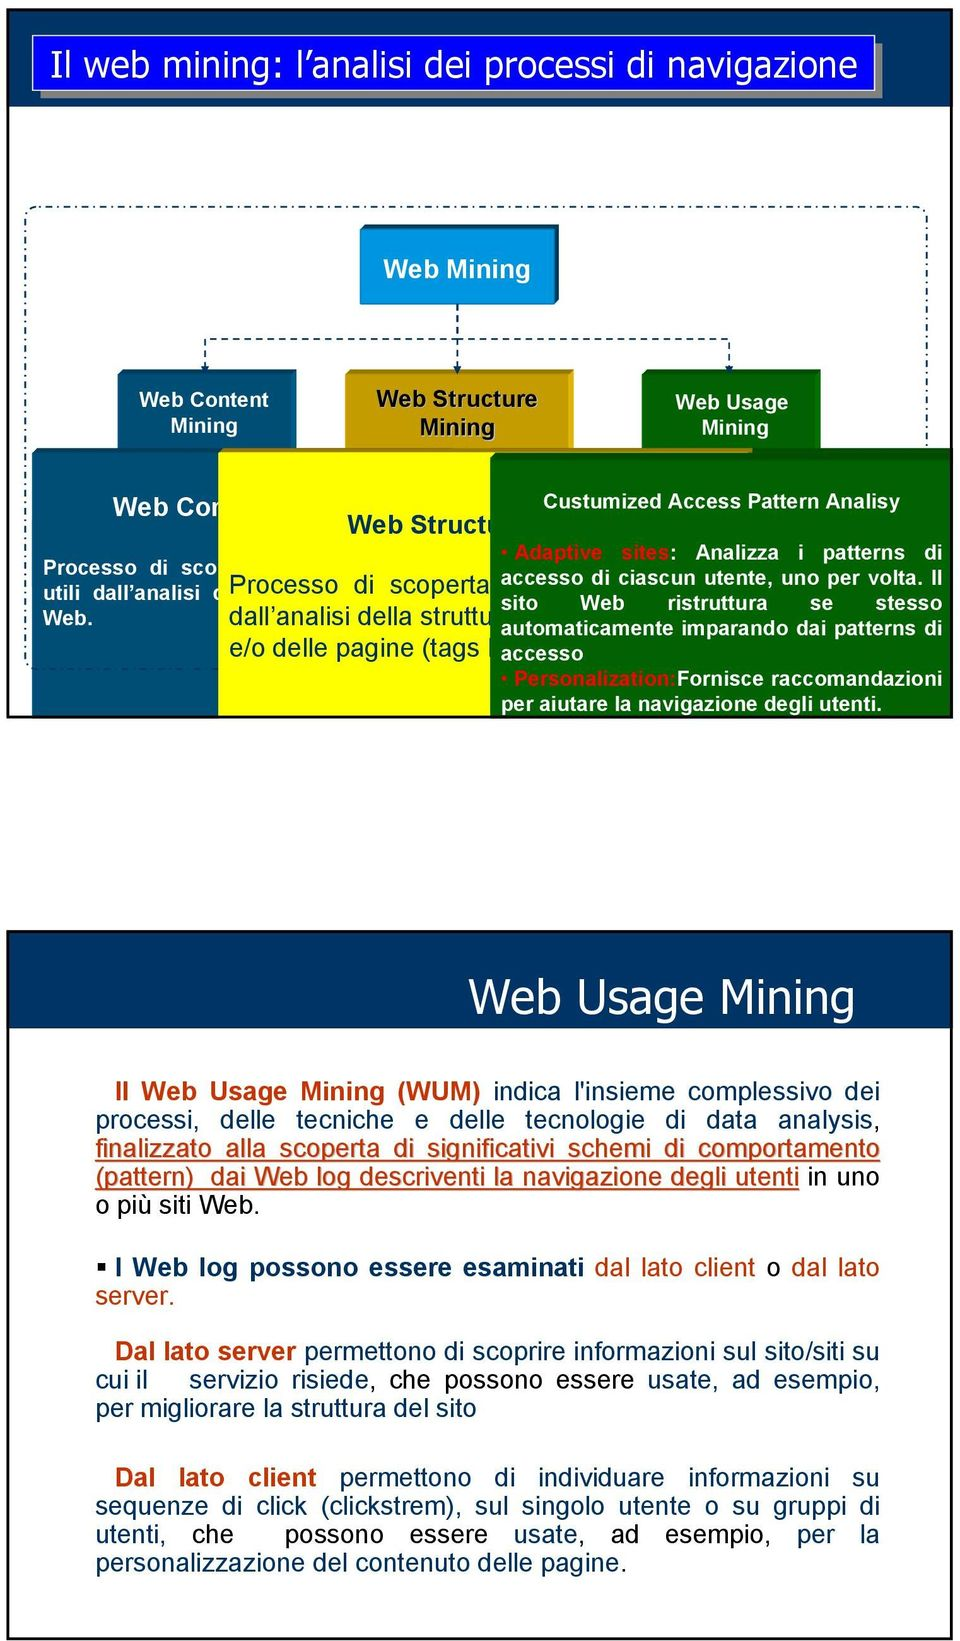 Custumized Web Access Usage Mining Pattern Analisy General General Access Access Pattern Analisy Customized Pattern Analisys Usage Analisys L'insieme Adaptive dei sites: processi, Analizza delle i